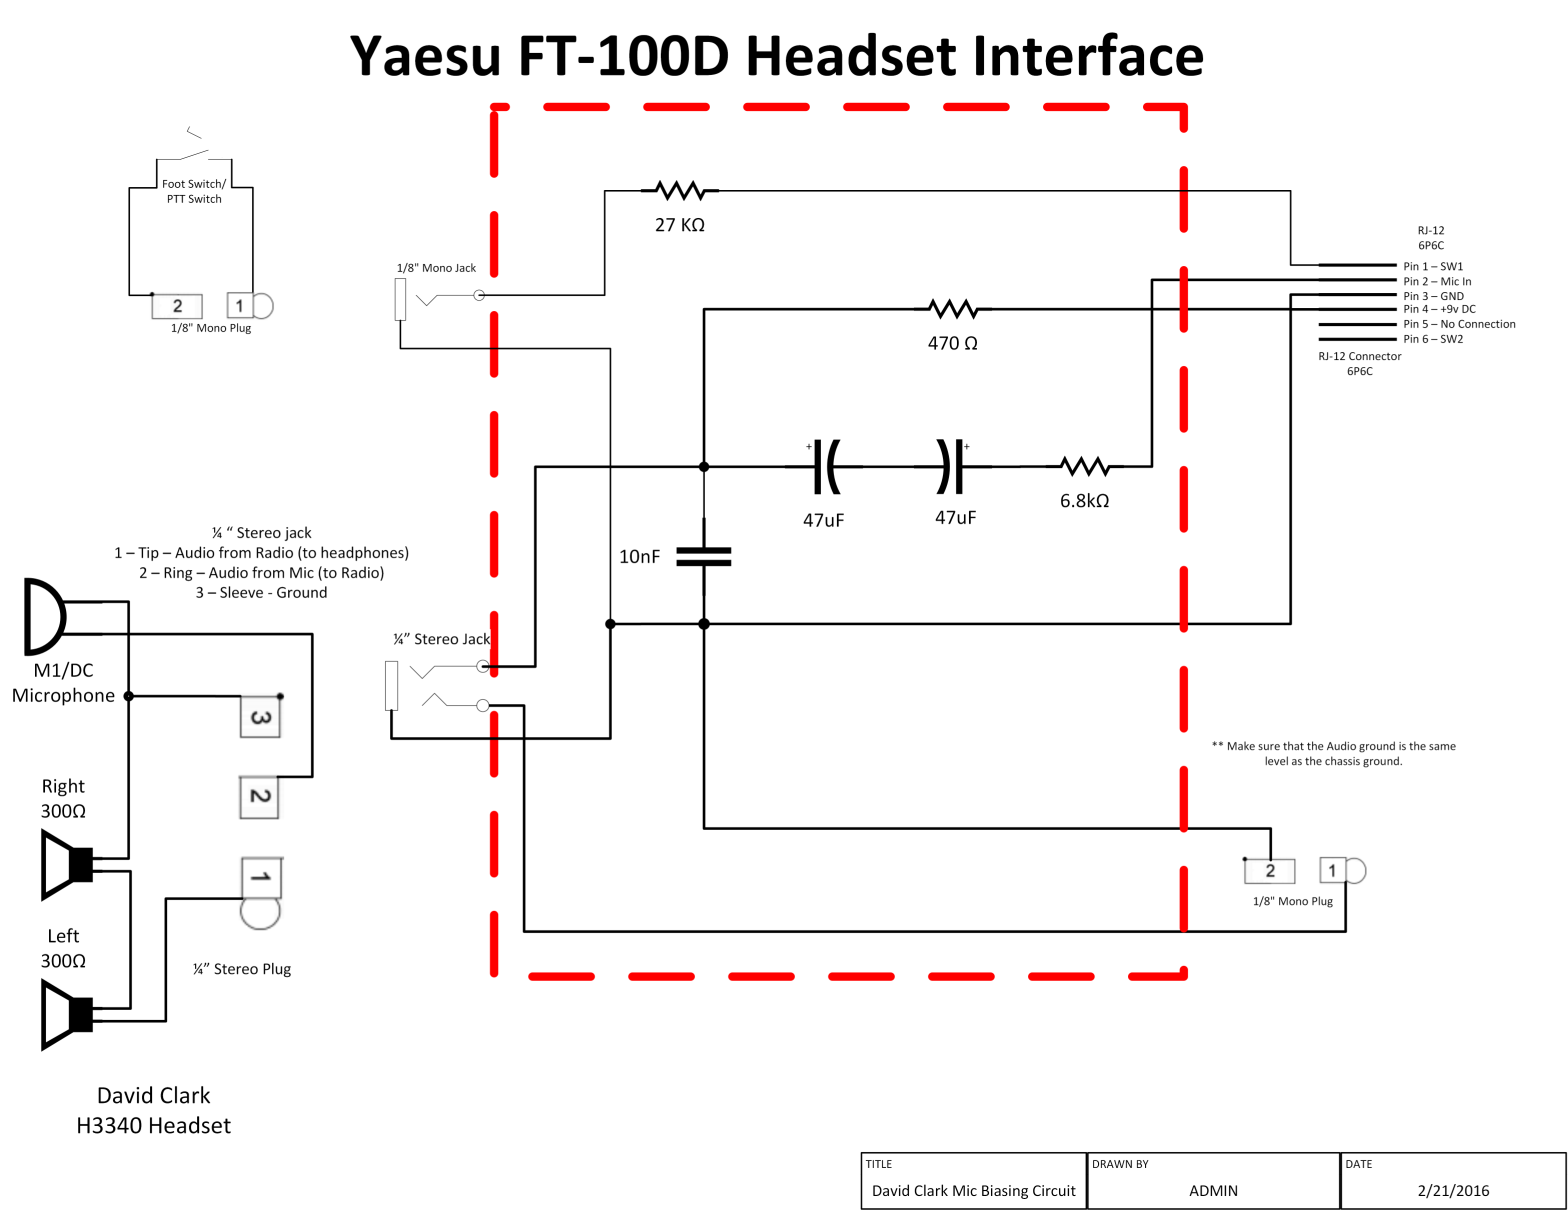 InterfaceCircuitFull connecting a david clark headset to a amateur radio (yaesu ft100 d) david clark headset wiring schematic at webbmarketing.co